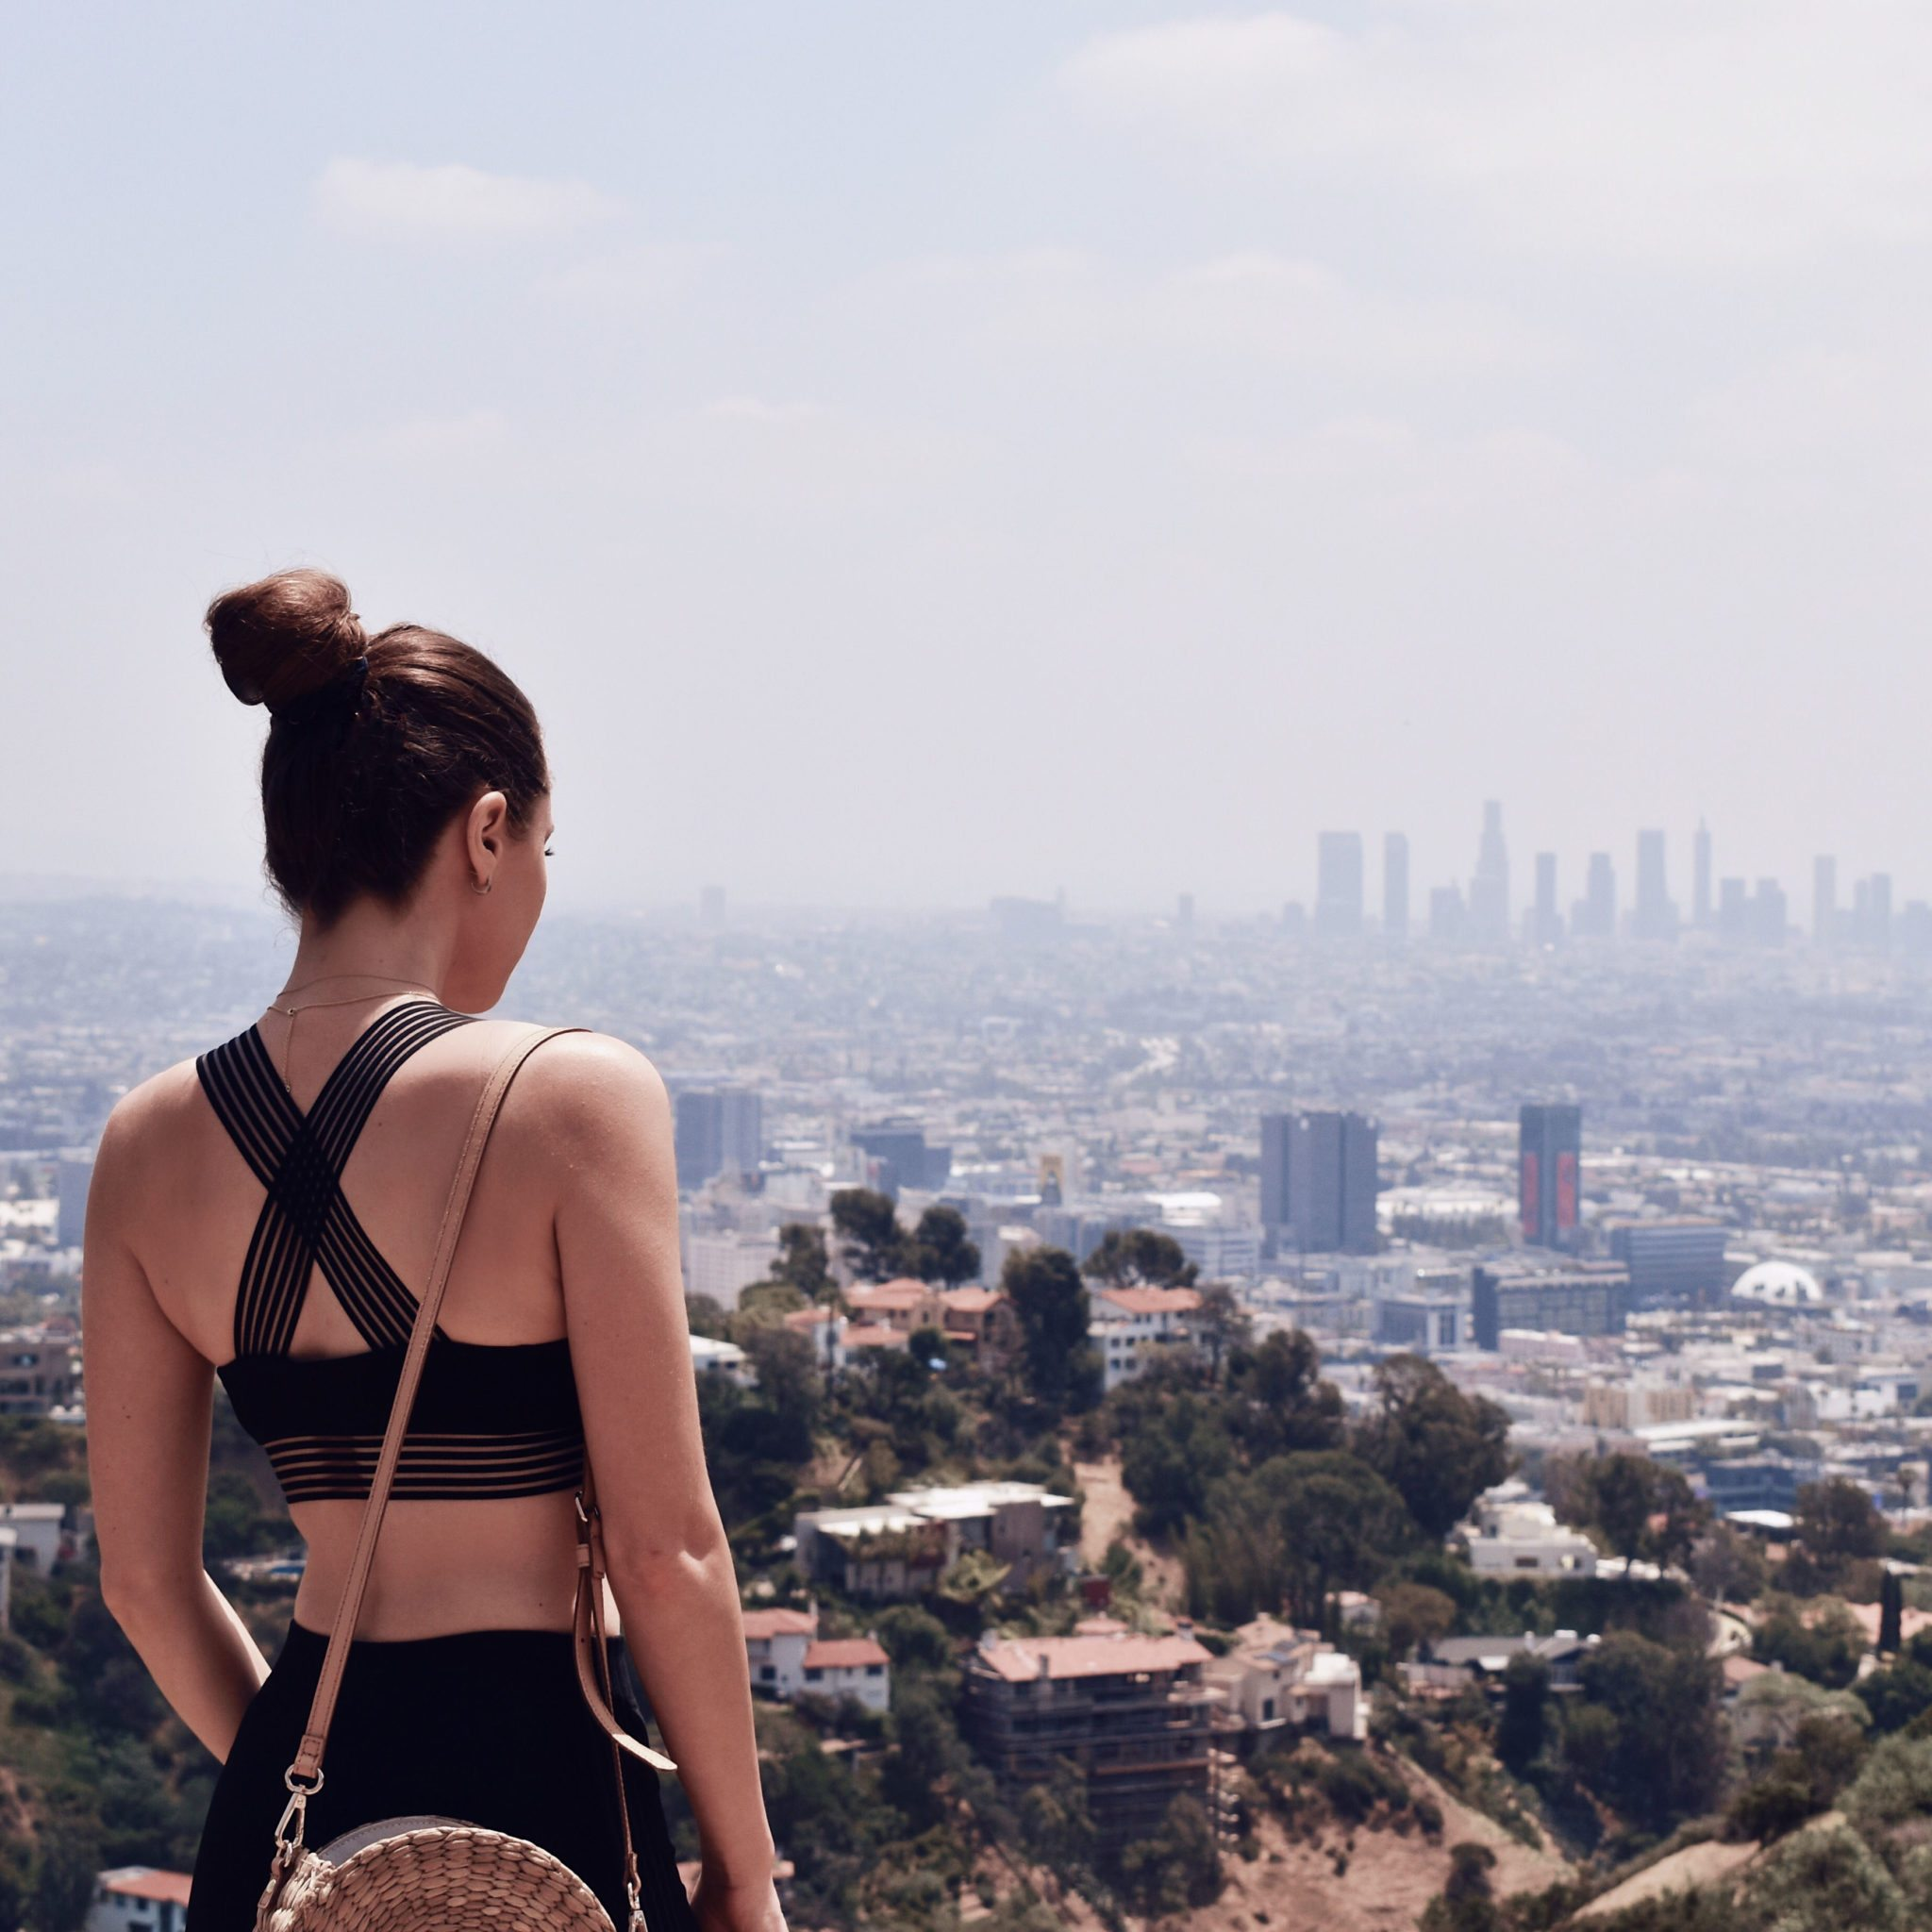 Fashion Diaries: Revolve Around The World Parties in Los Angeles - Lovewave sport bra and black leggings worn by Fashion Blogger Julia Comil. More on Houseofcomil.com. Pin to read it later. Location Runyon Canyon Los Angeles - Active wear outfit runyon canyon